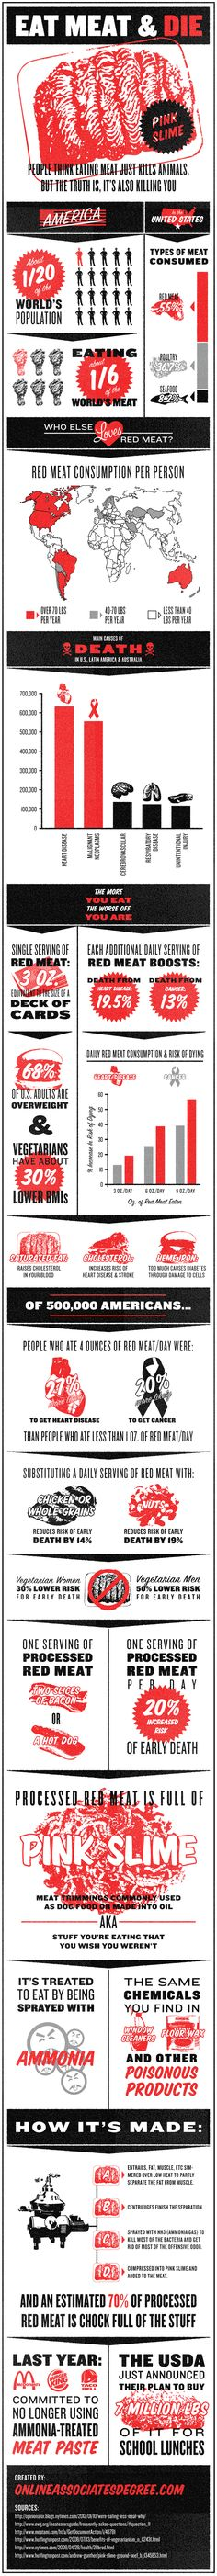 Interesting infographic on the consumption of red meat